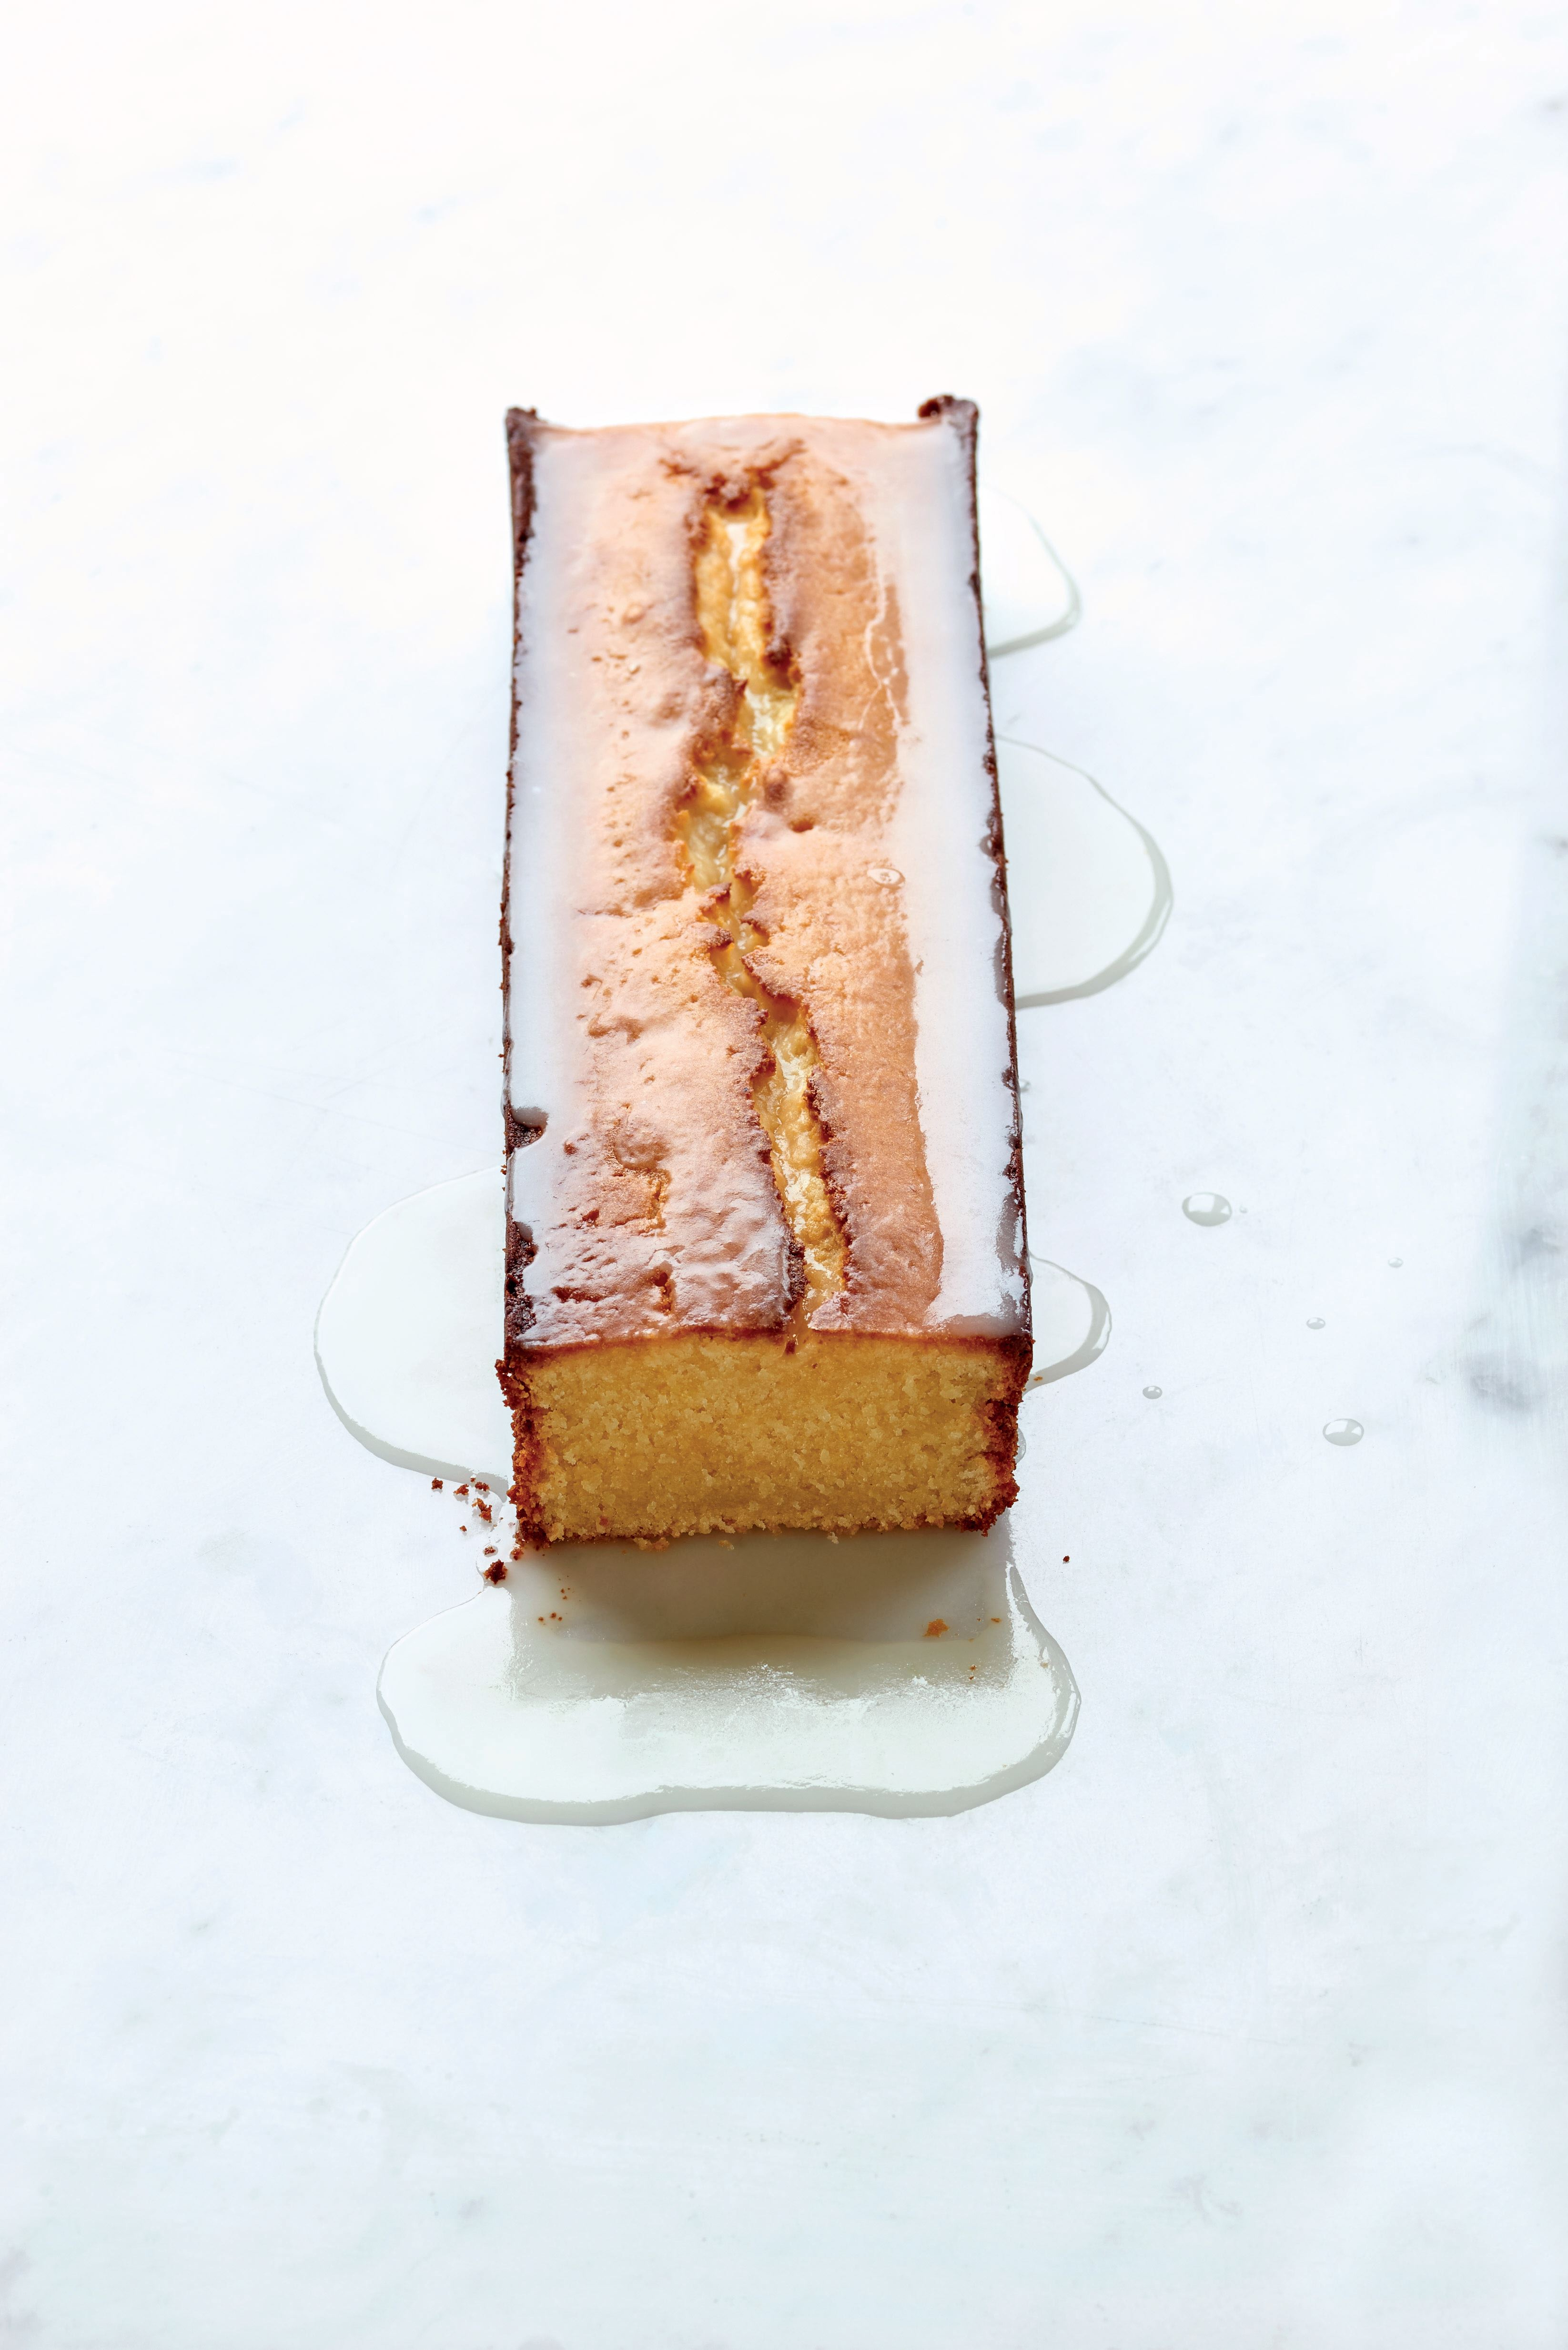 Classic French lemon cake